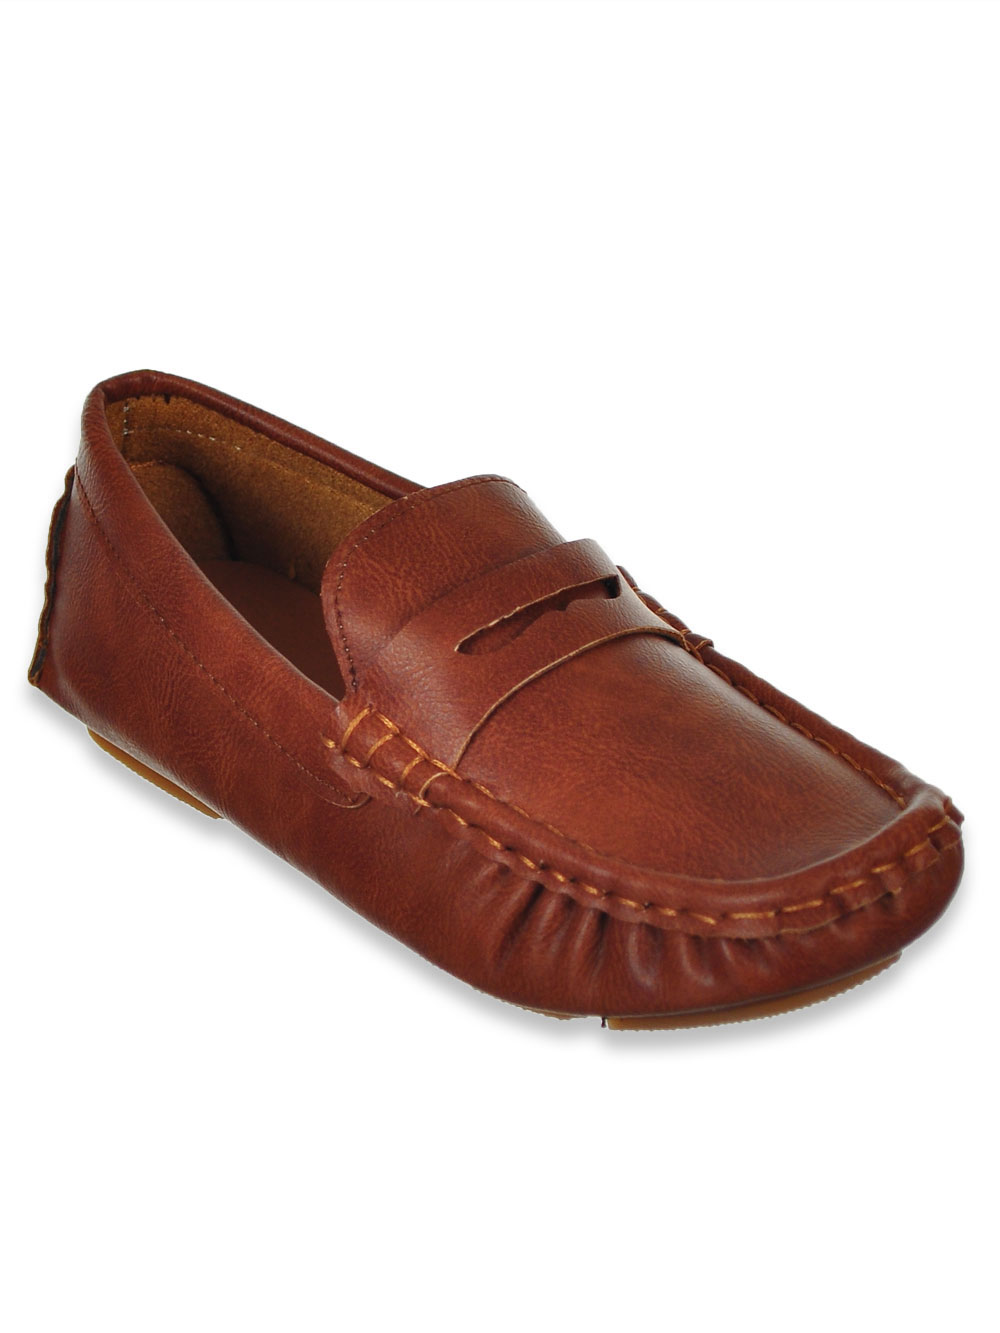 Eddie Marc Boys' Penny Loafers (Sizes 5 - 4) | eBay